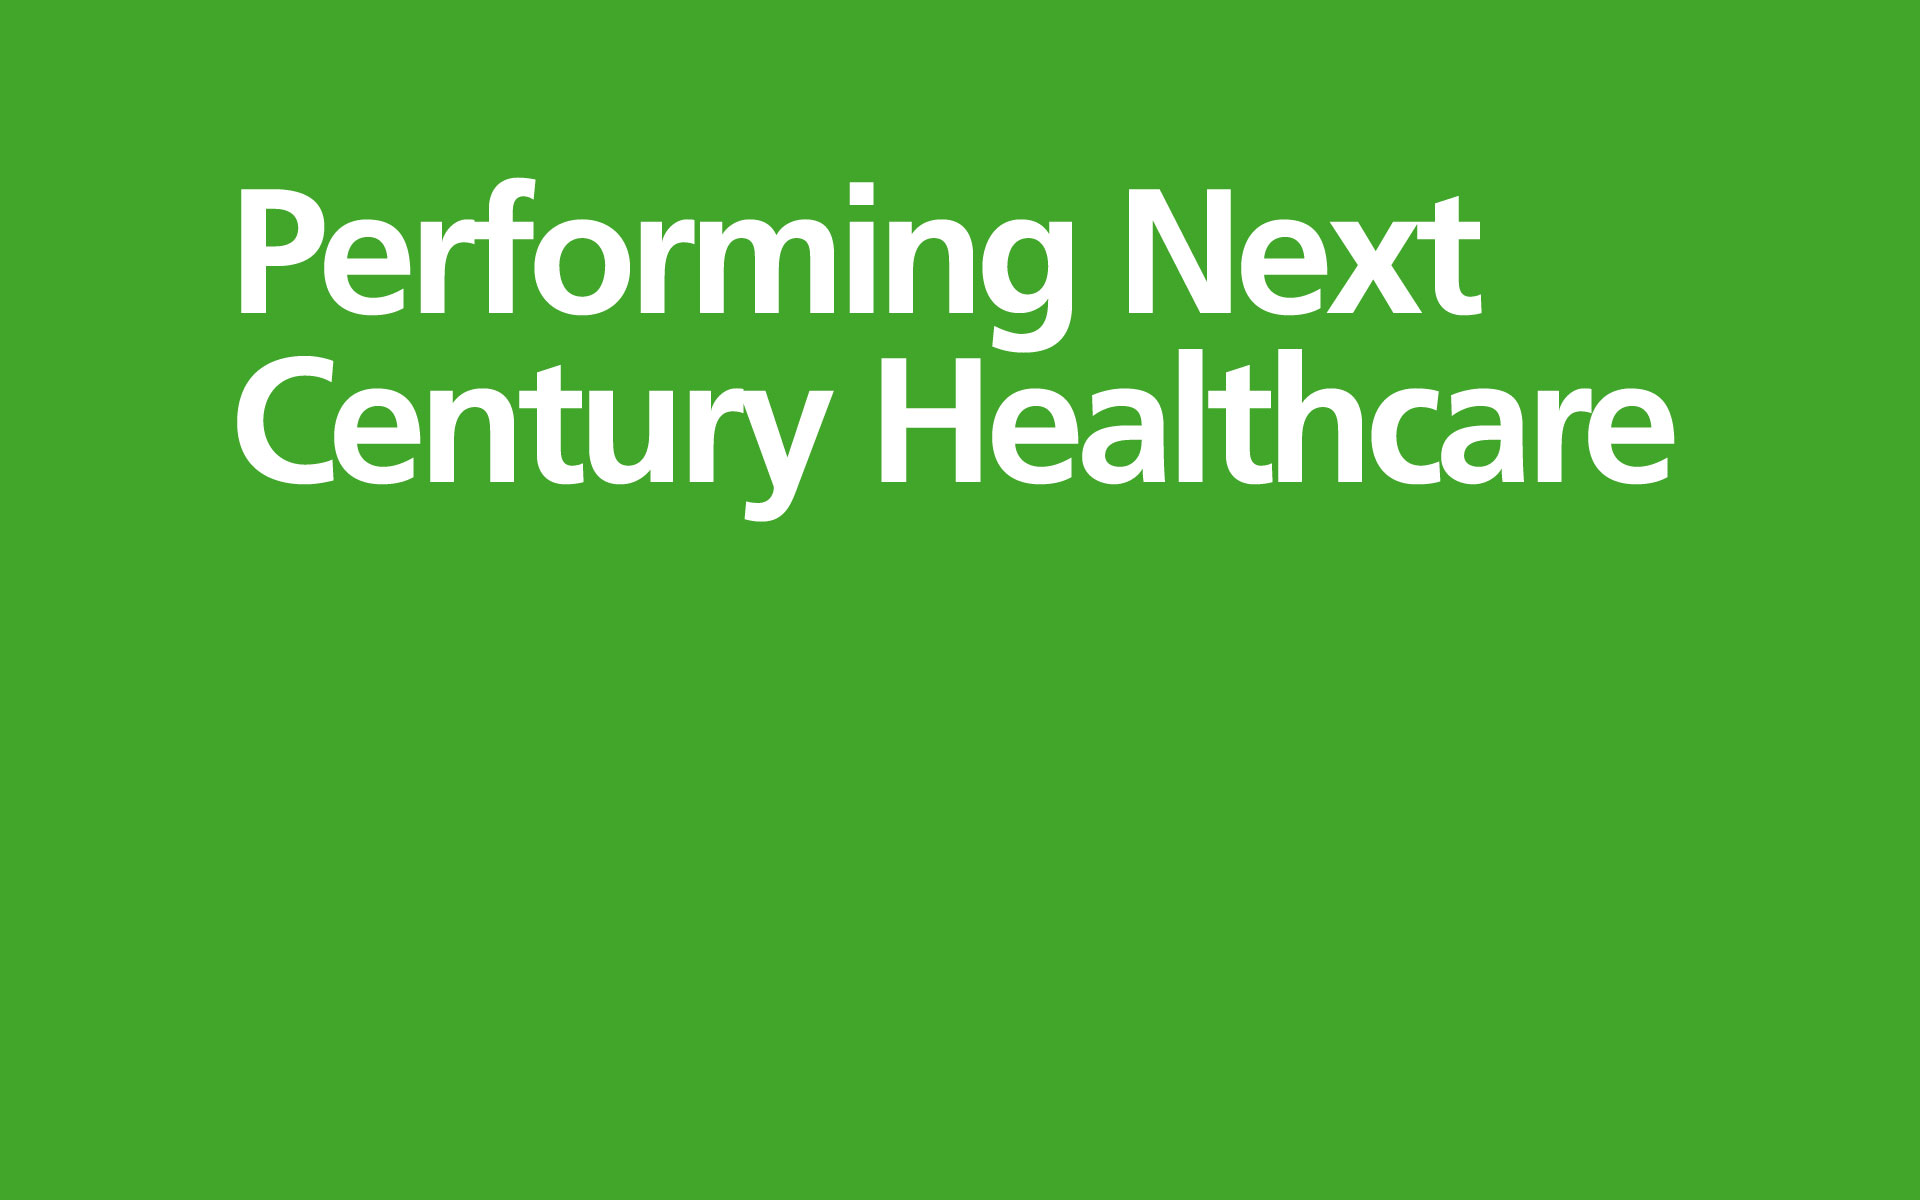 Vanguard – Performing Next Century Healthcare